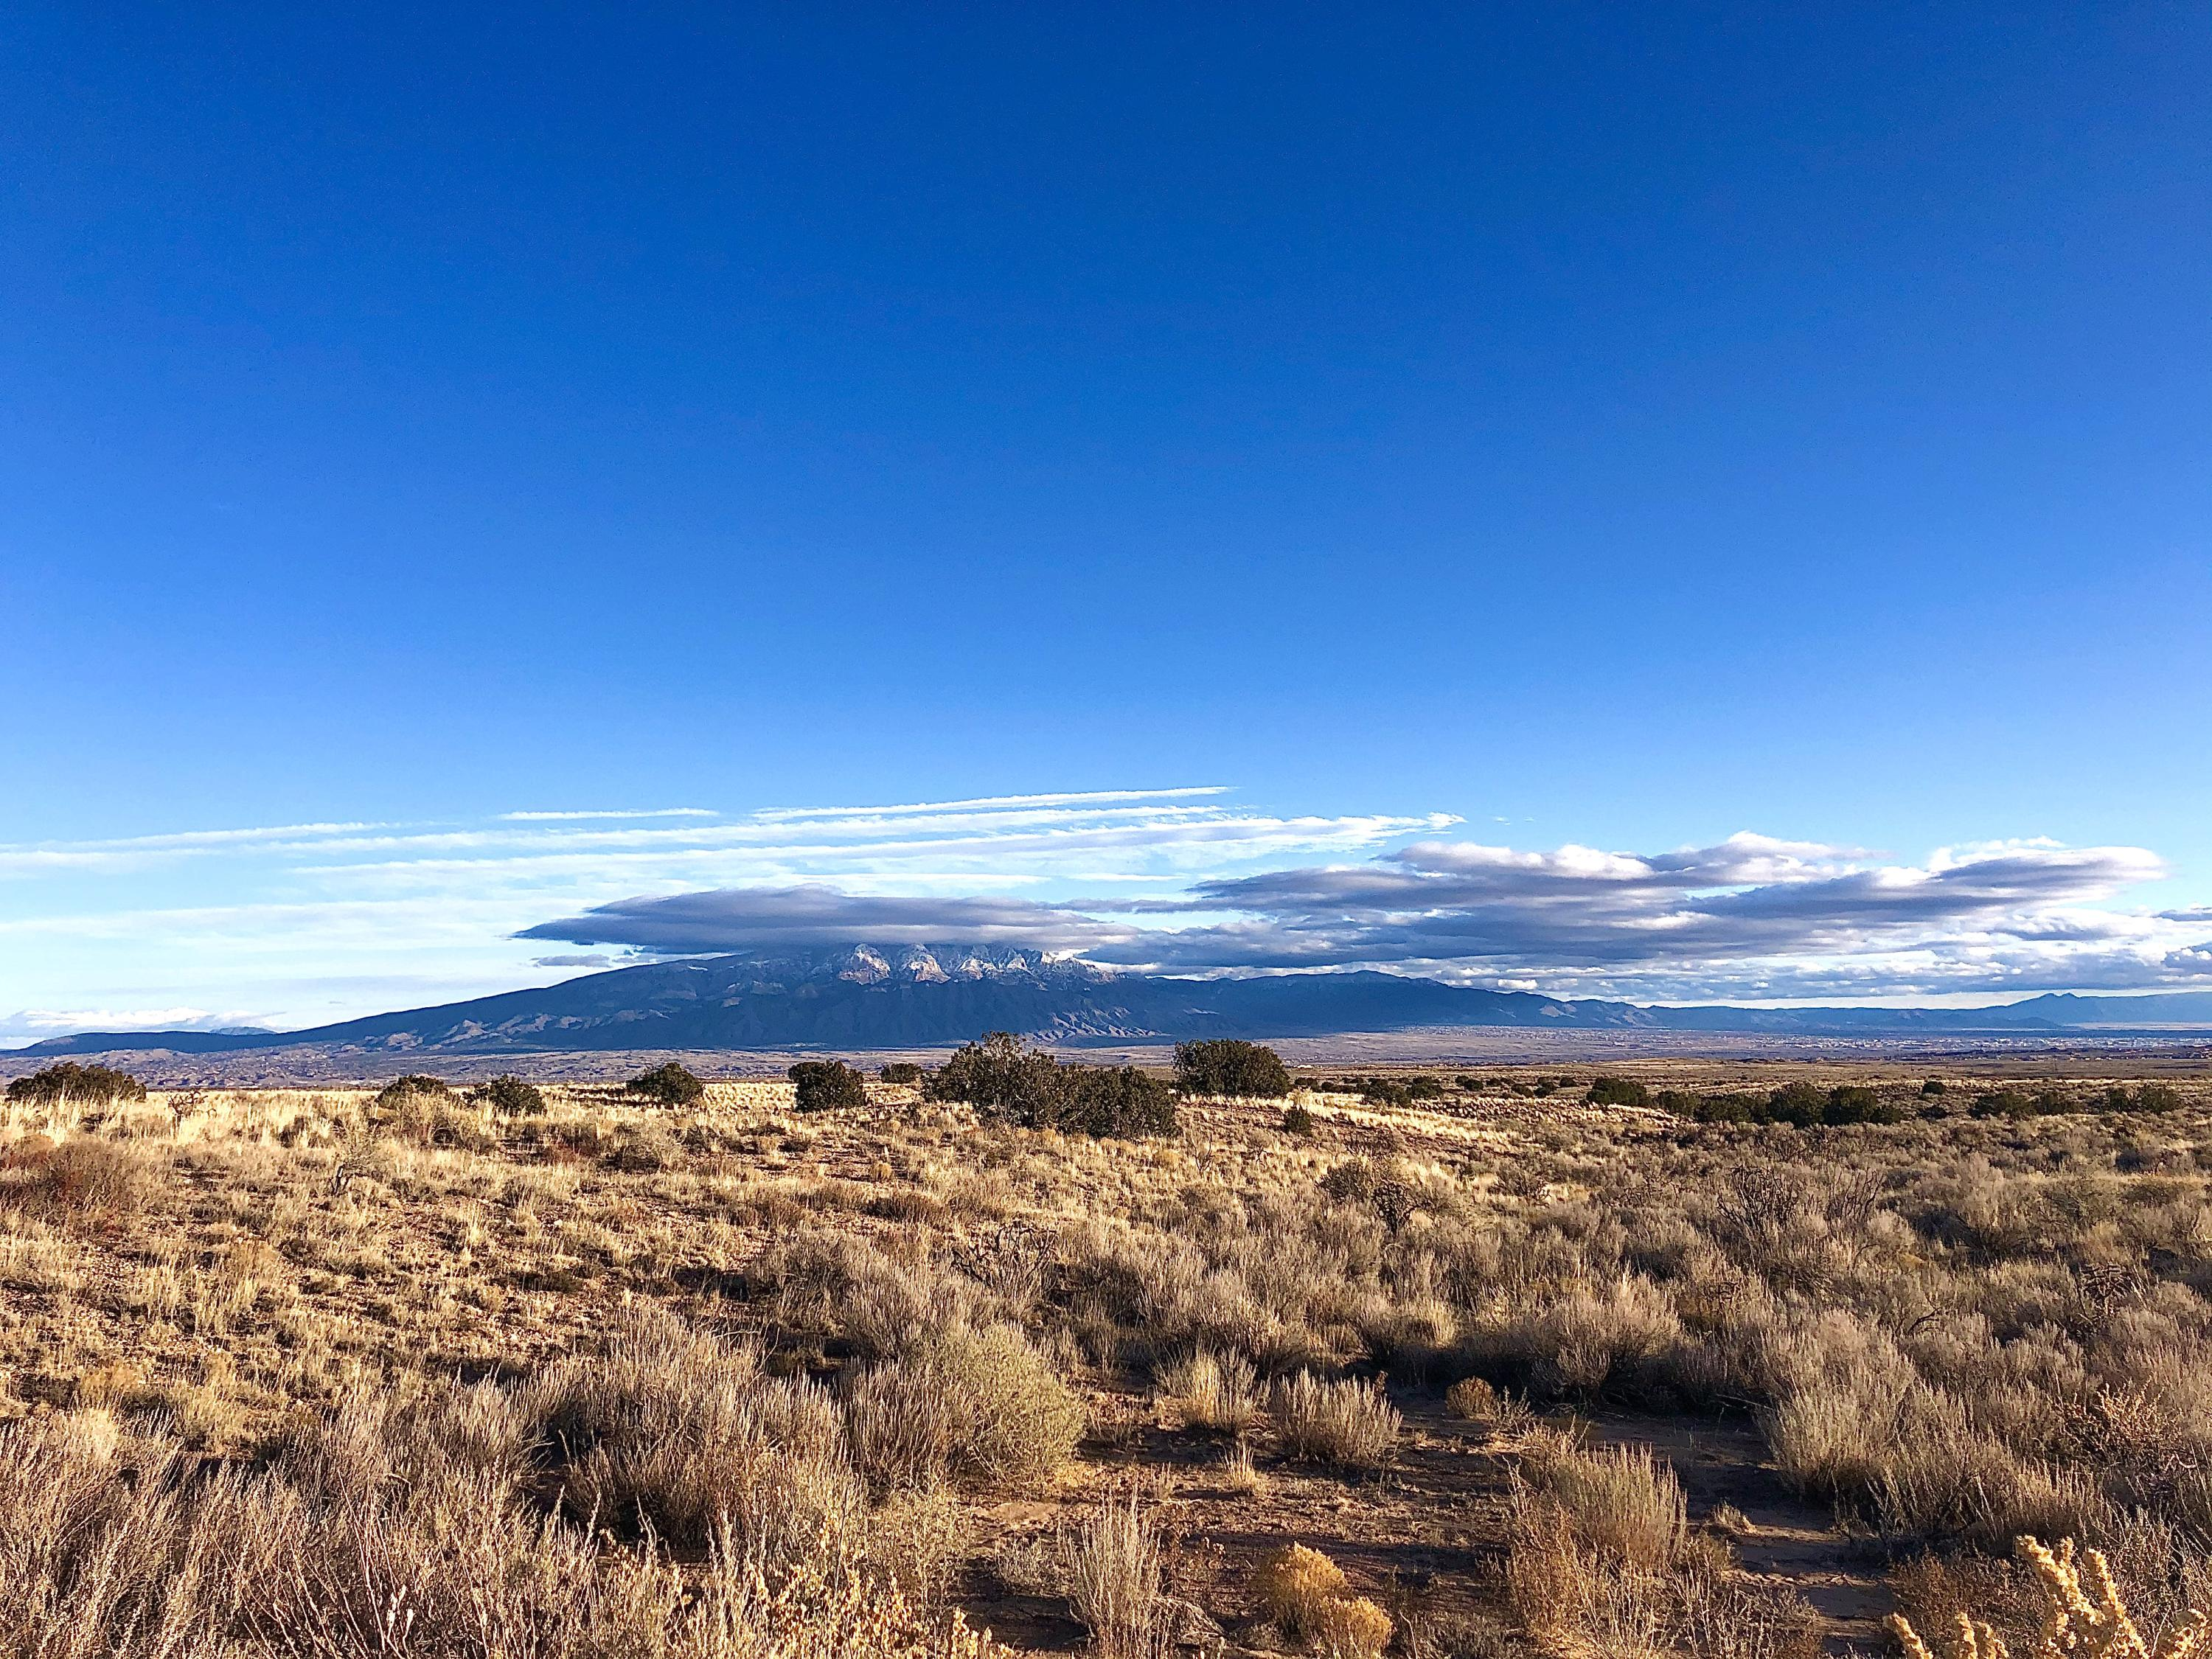 2324 Venada Road NE, Rio Rancho, NM 87144 - Rio Rancho, NM real estate listing